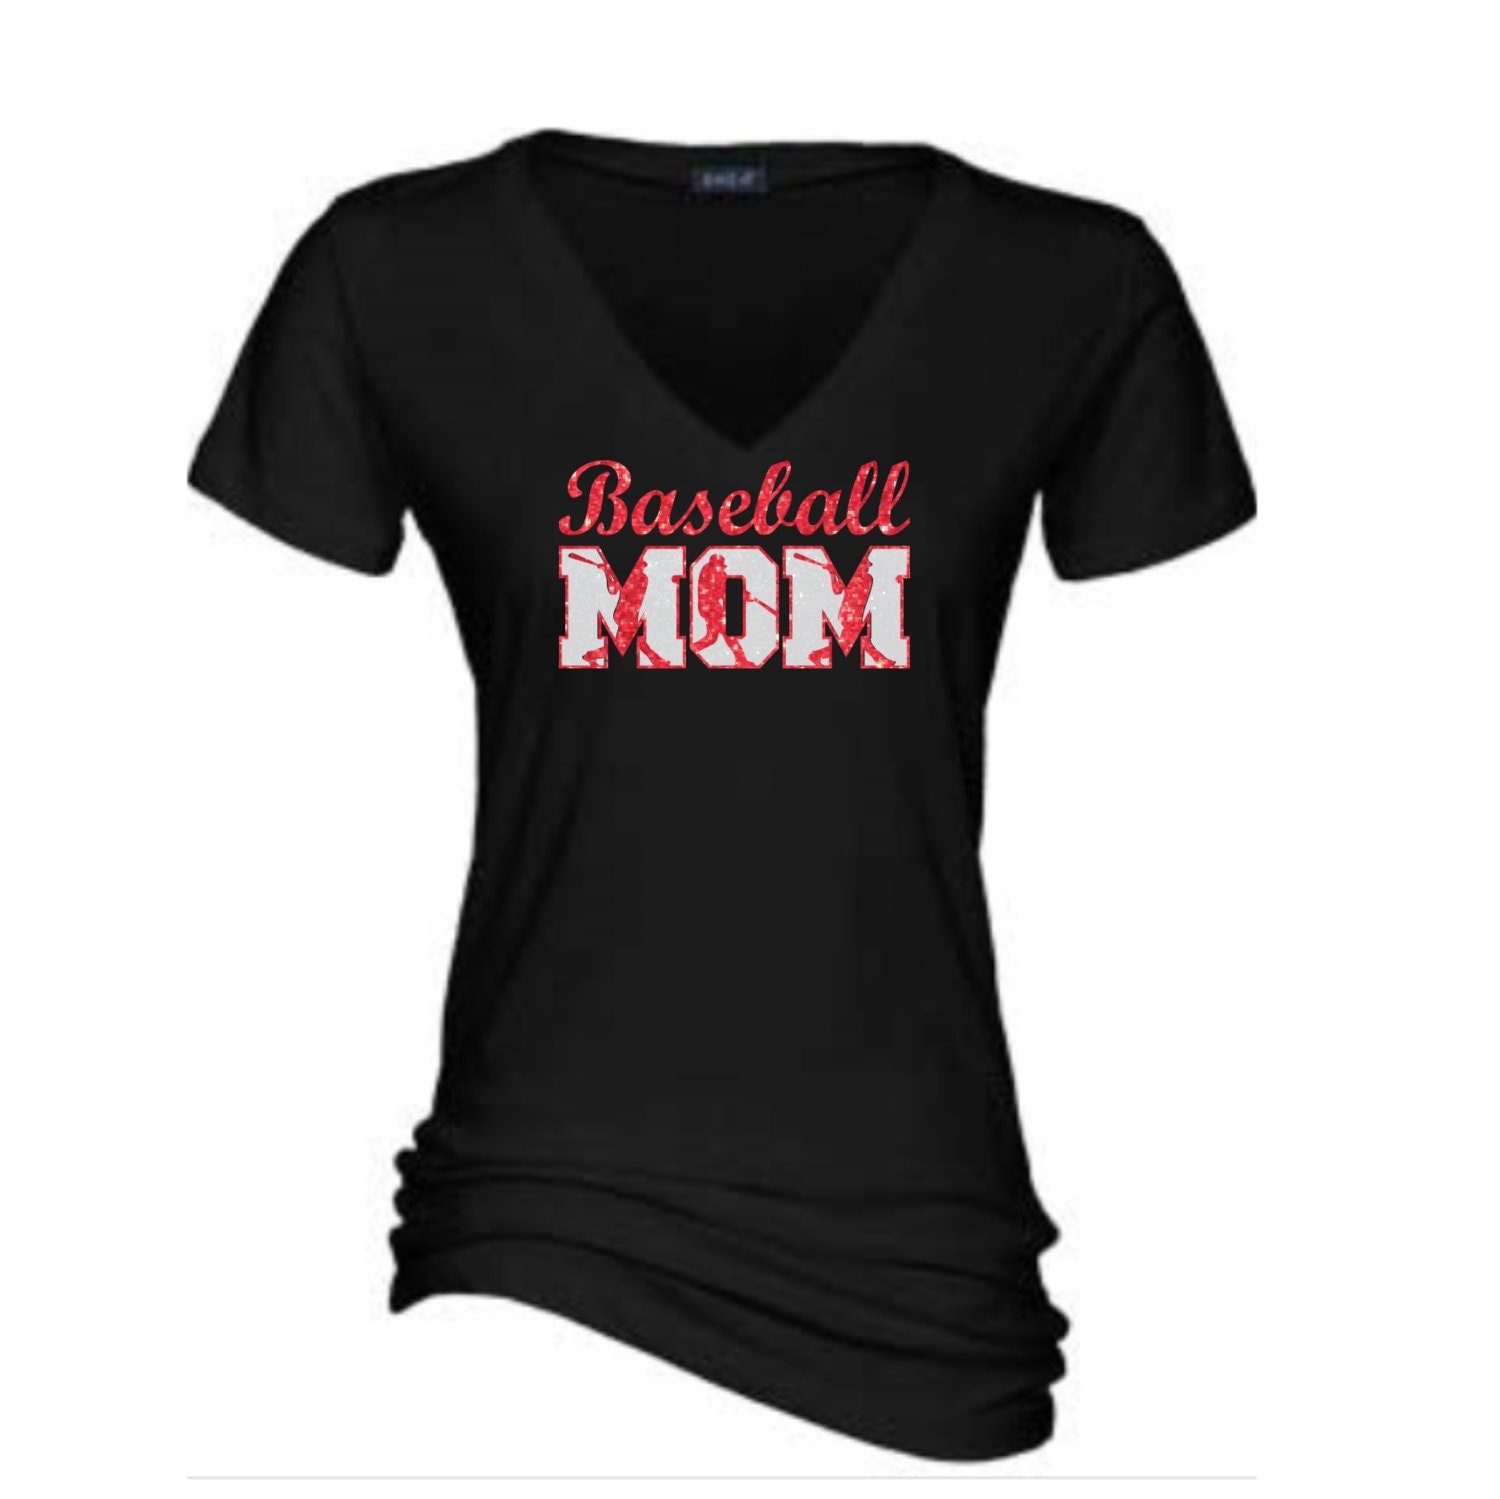 Baseball shirt baseball mom shirt custom baseball shirt Designer baseball shirts